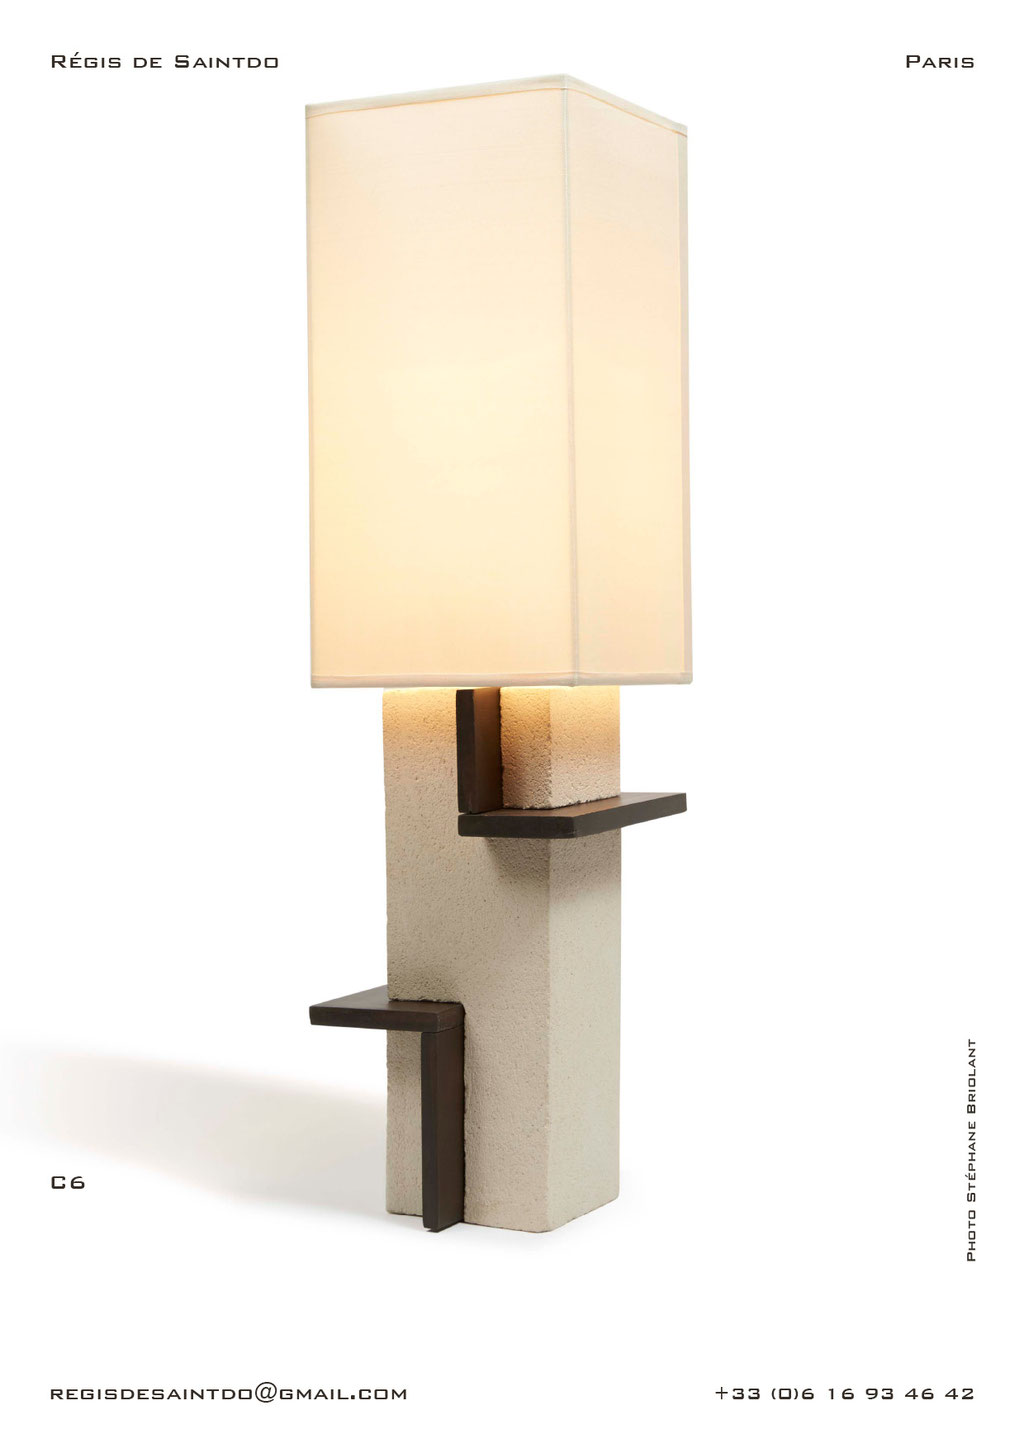 Lampe-C6-céramique-blanche-brute-brune-polie-faite-main-unique